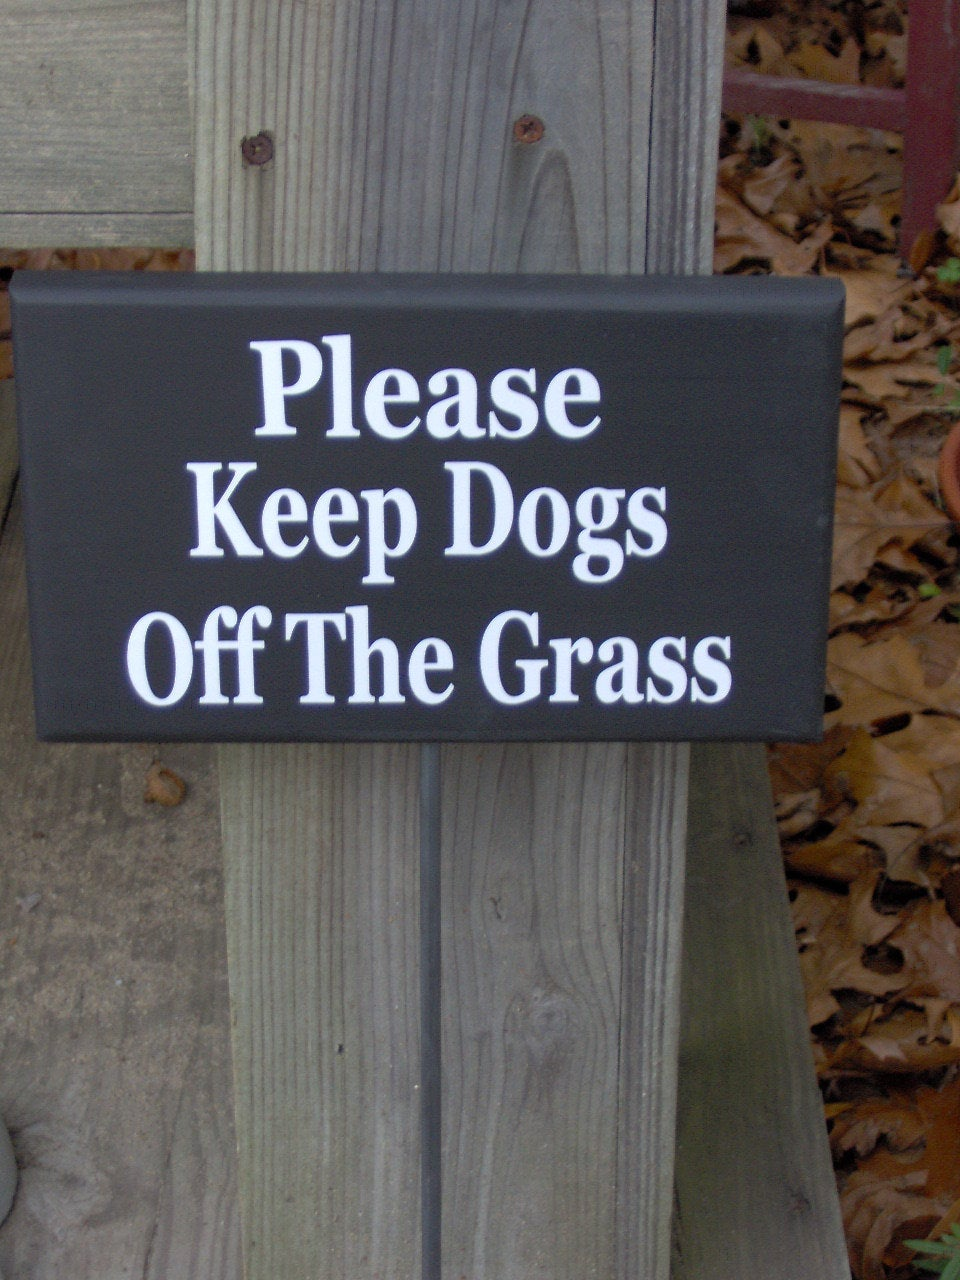 Please Keep Dogs Off Grass Wood Vinyl Stake Sign K9 Pet No Trespassing Private Residence Property Yard Art Garden Stake Yard Sign New Home